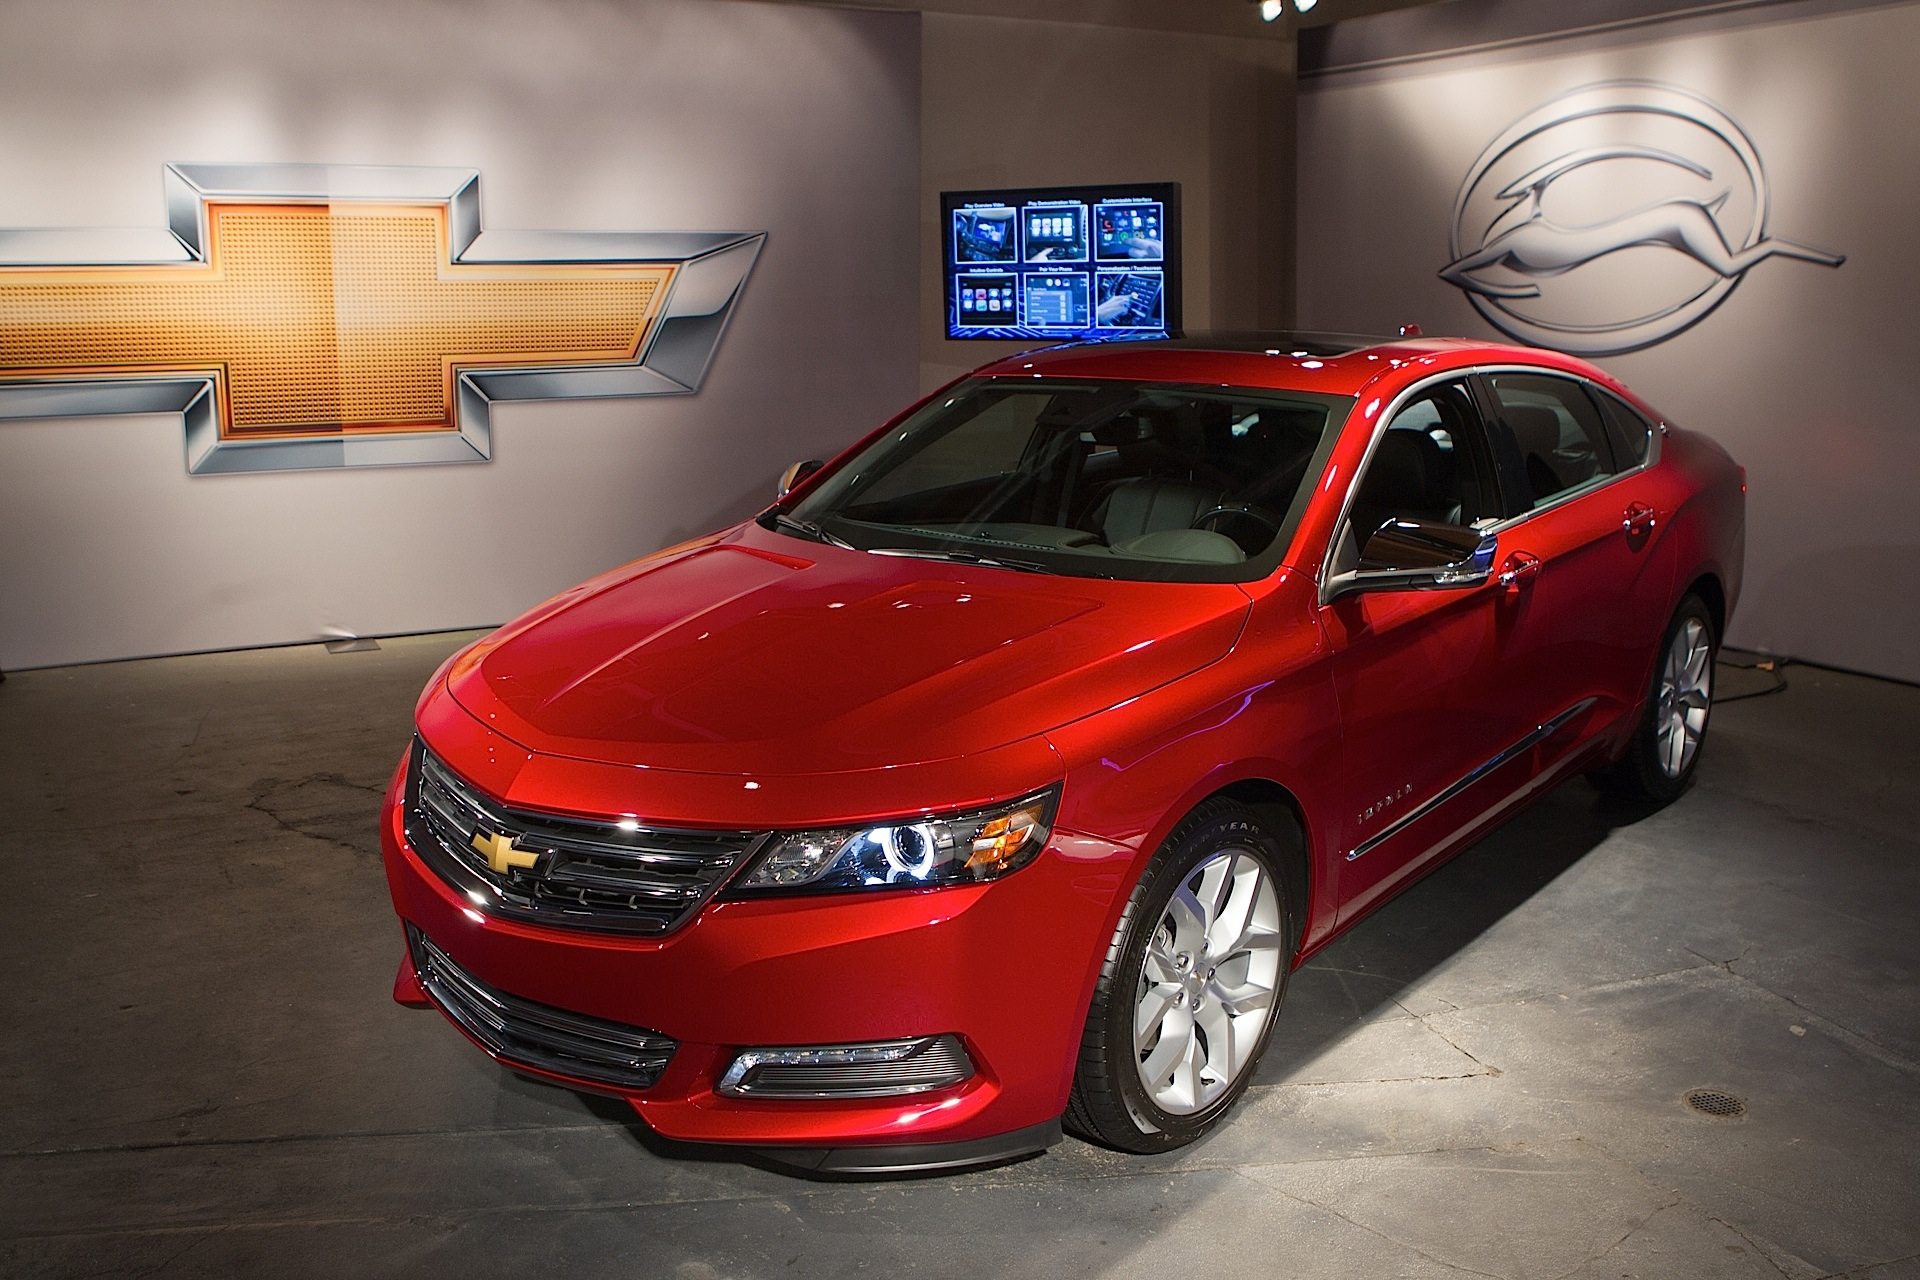 chevrolet impala specs  u0026 photos - 2013  2014  2015  2016  2017  2018